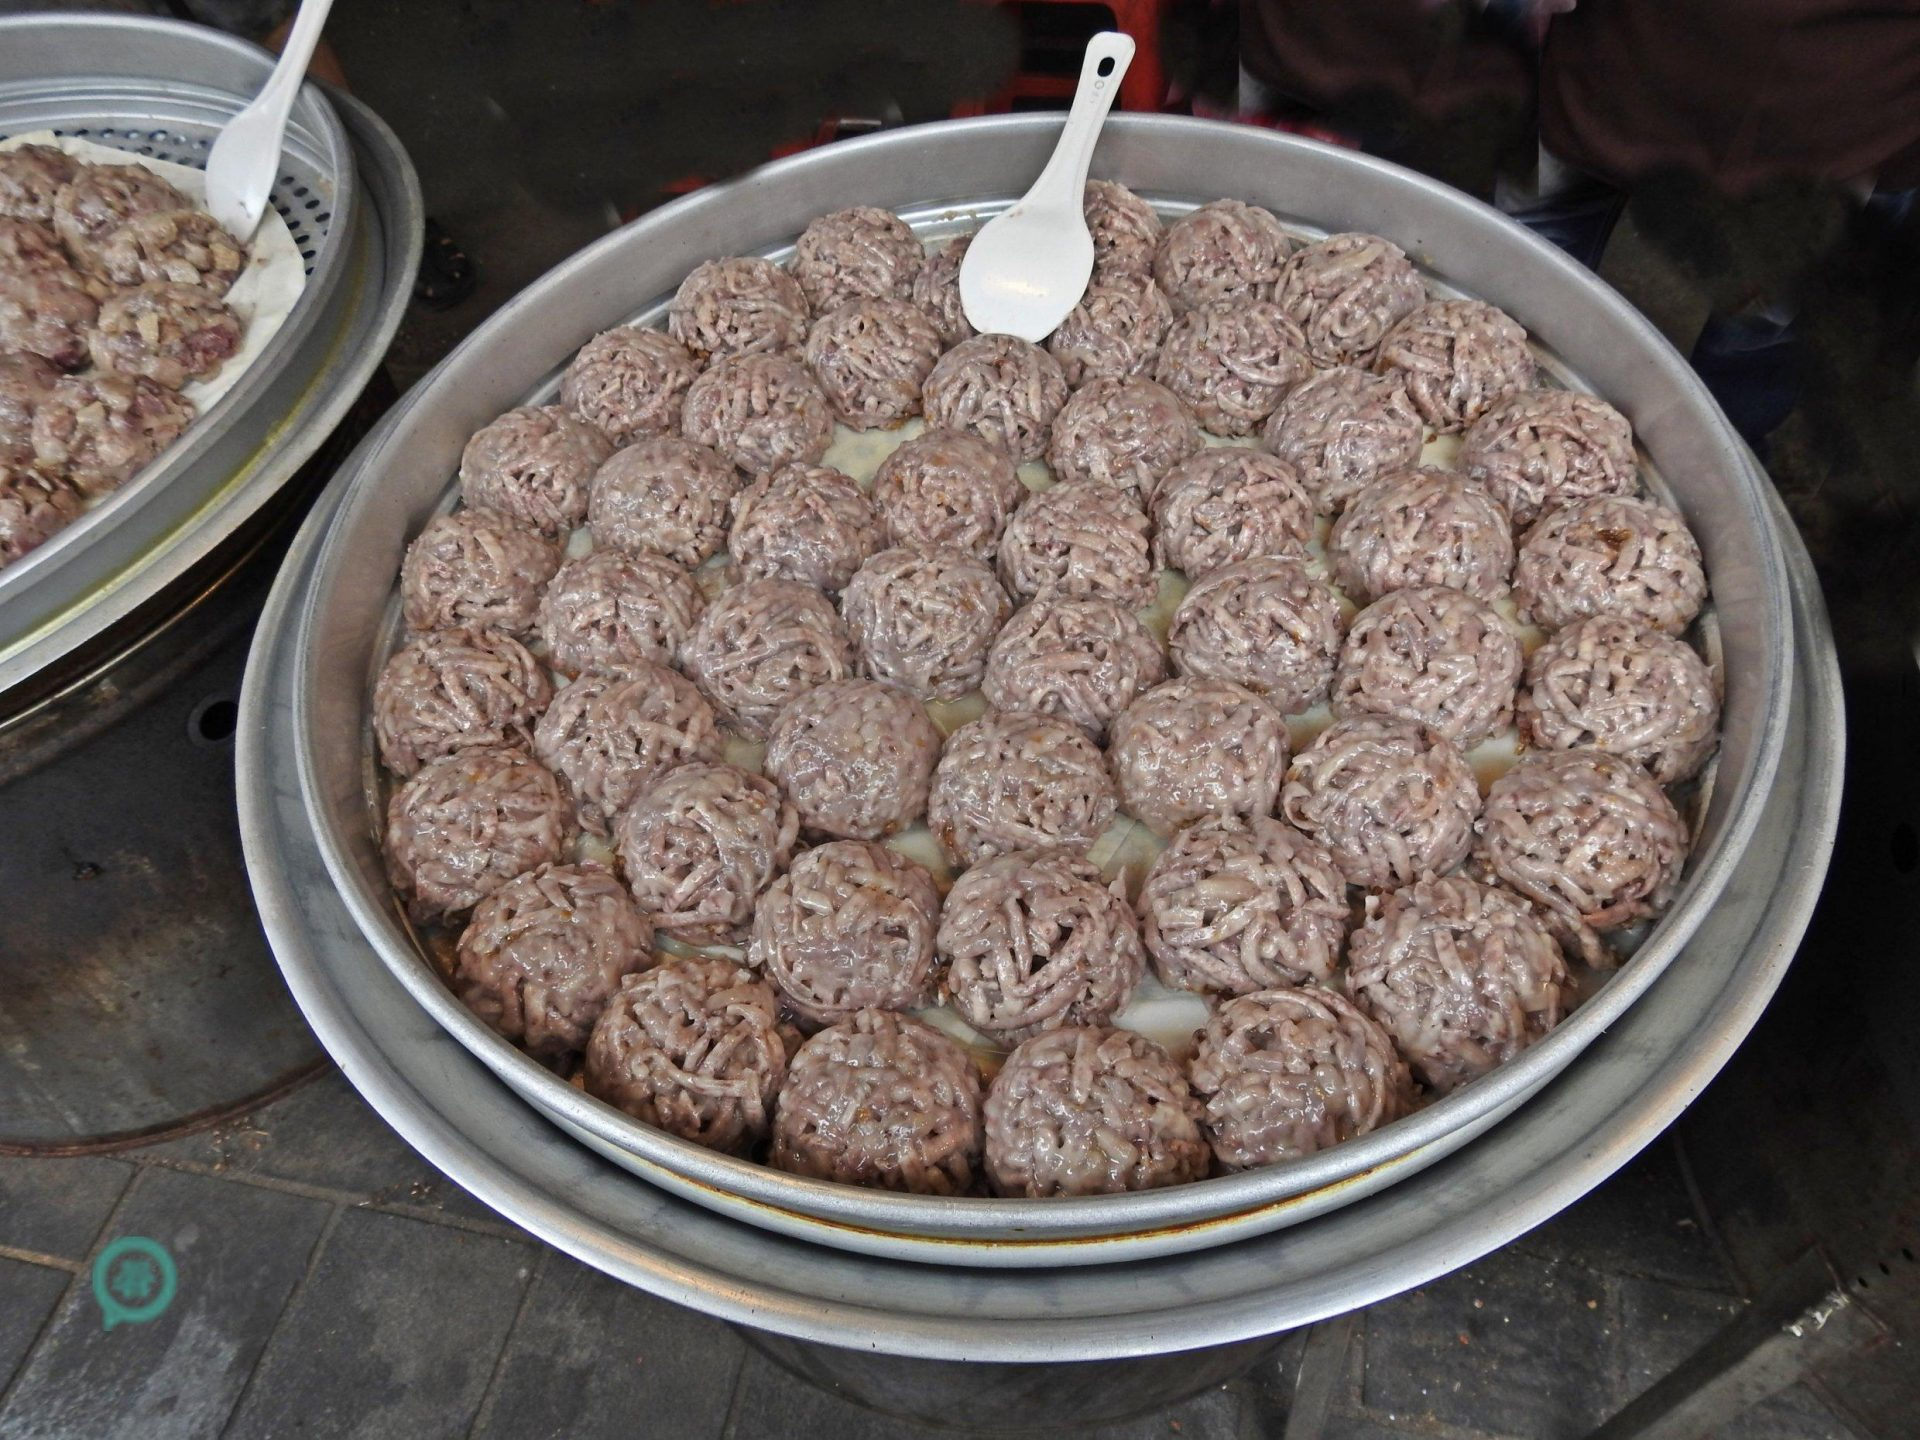 The traditional taro cakes sold on Jinshan Old Street are very delicious. (Image: Billy Shyu / Vision Times)